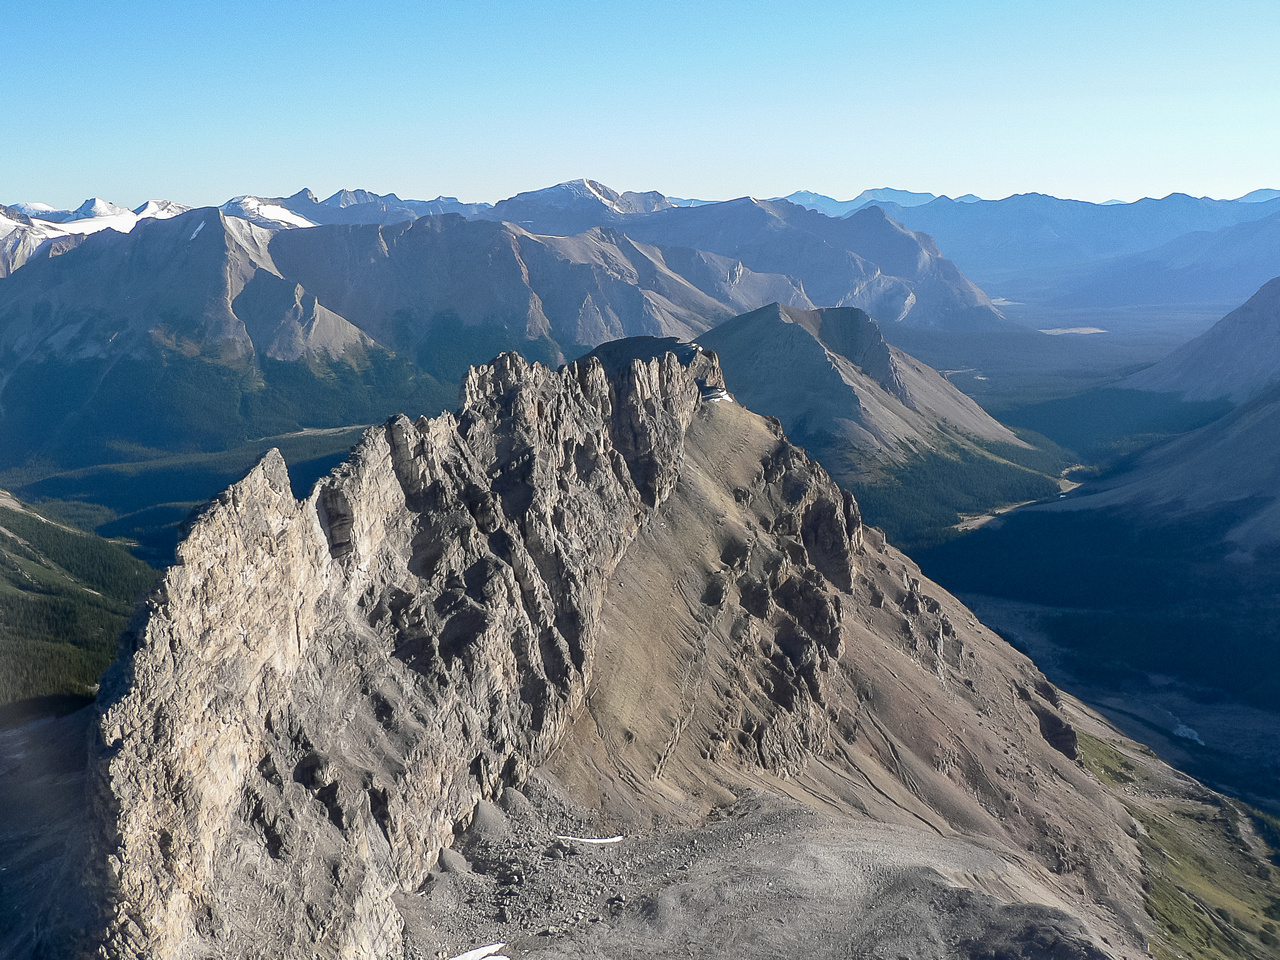 Wall of Jericho with Skoki Peak, Cyclone, Pipestone and Drummond in the distance.